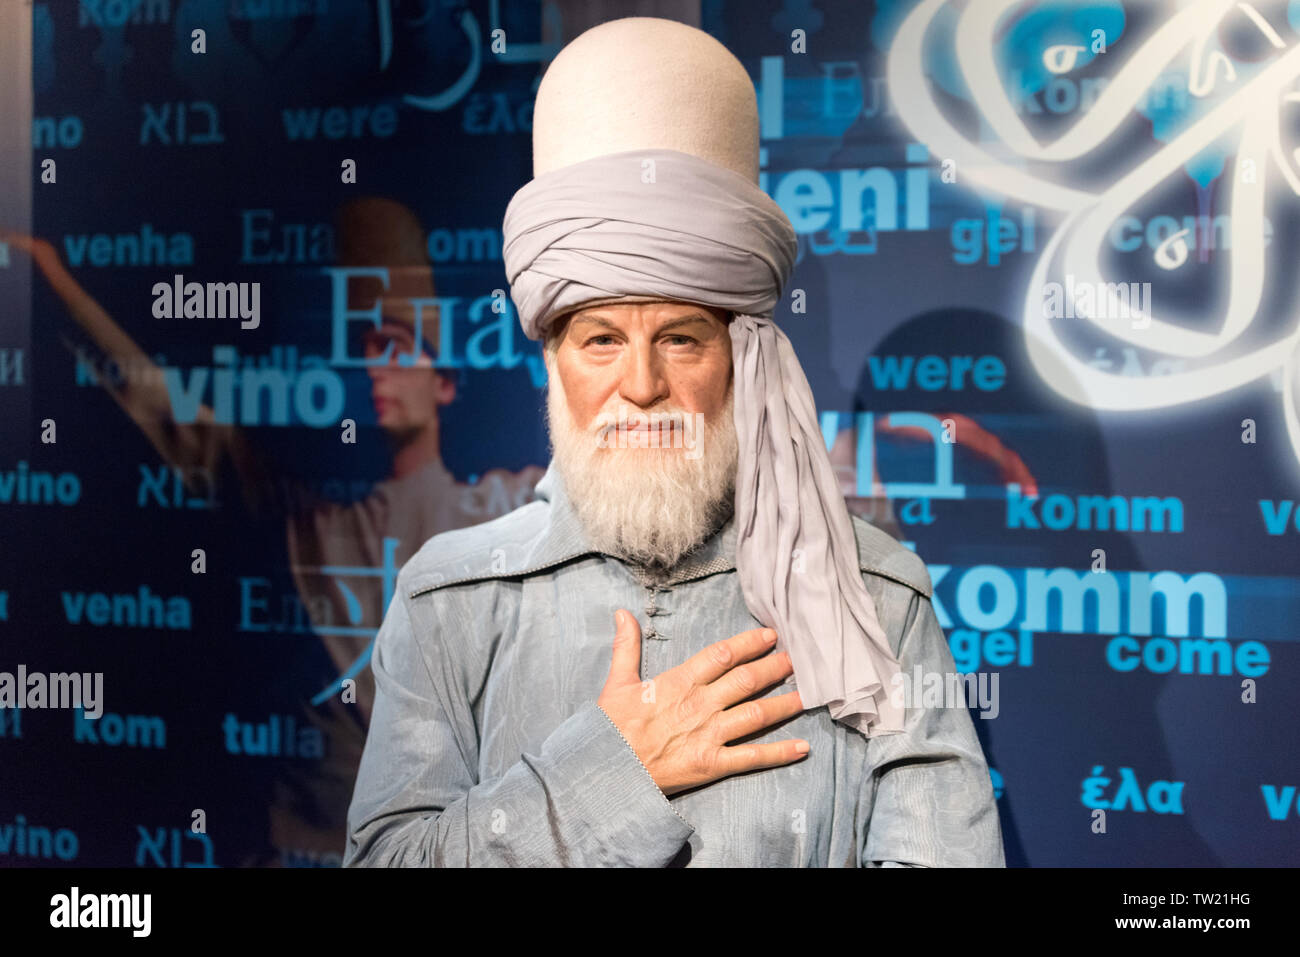 ISTANBUL, TURKEY - MARCH 16, 2017: Mevlana Celaleddin  Rumi wax figure at Madame Tussauds  museum in Istanbul. - Stock Image